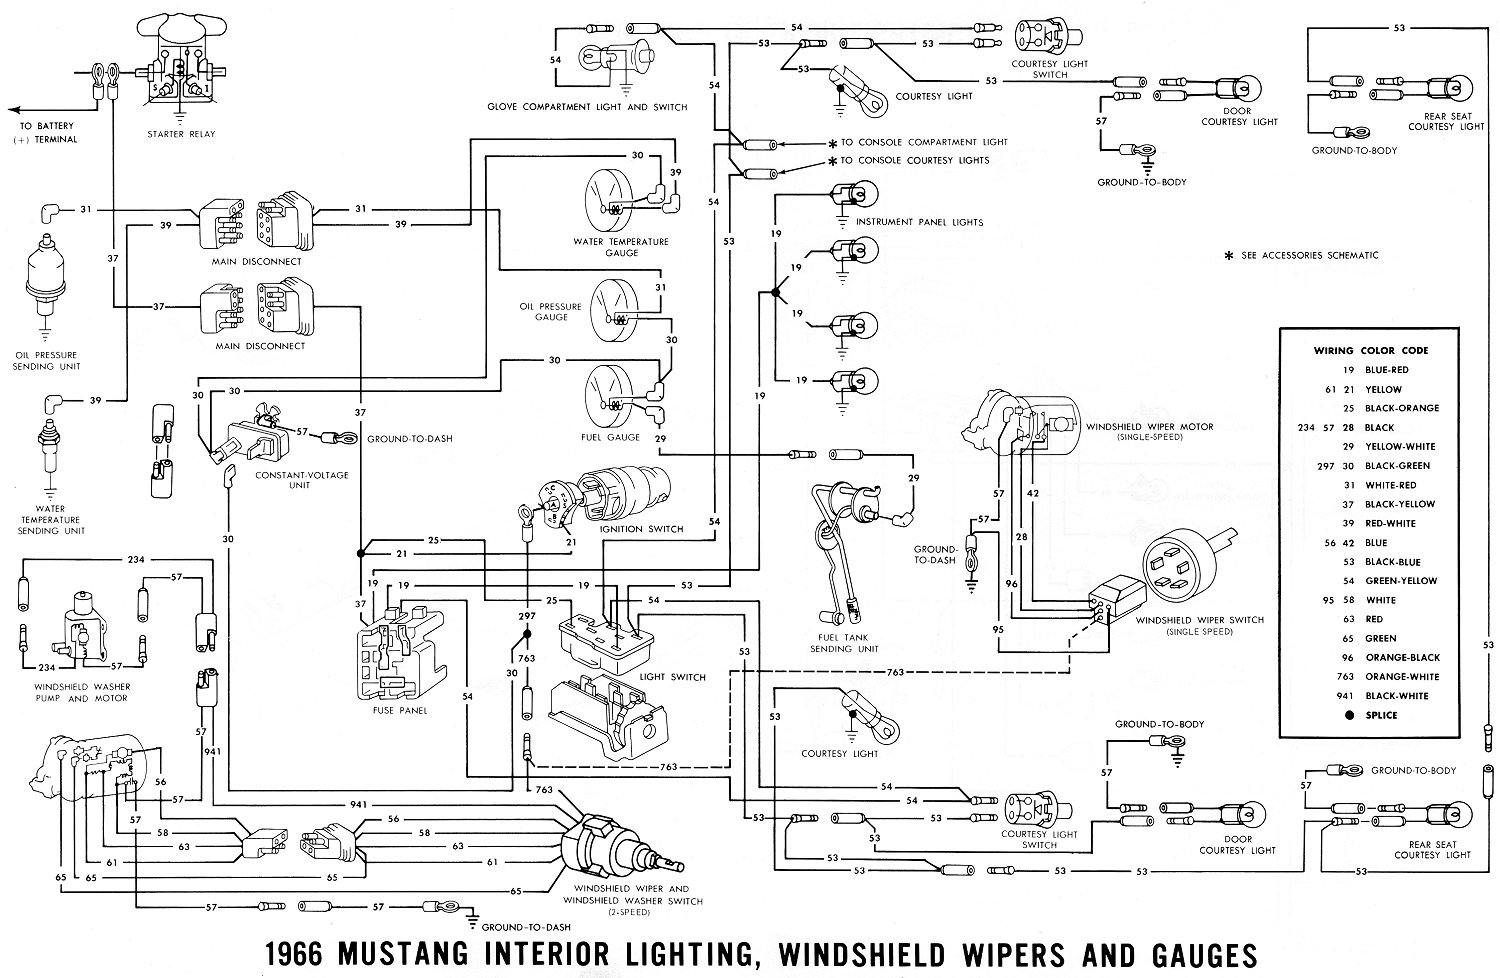 66inter1 1966 mustang wiring diagrams average joe restoration 65 mustang engine wiring diagram at soozxer.org